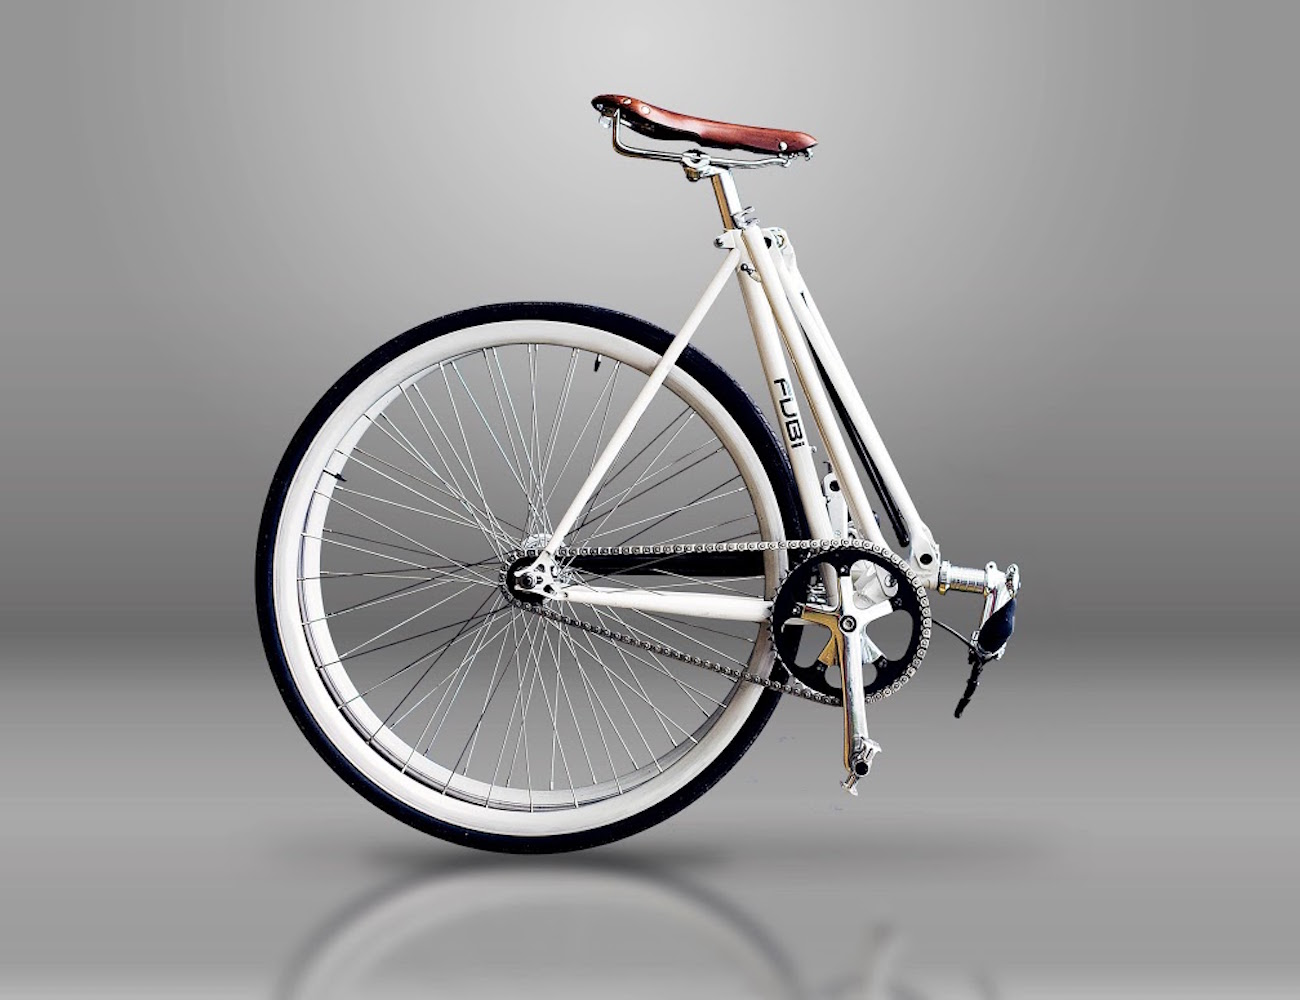 FUBi Fixie – Transform Your Bike Into A Folding Bike